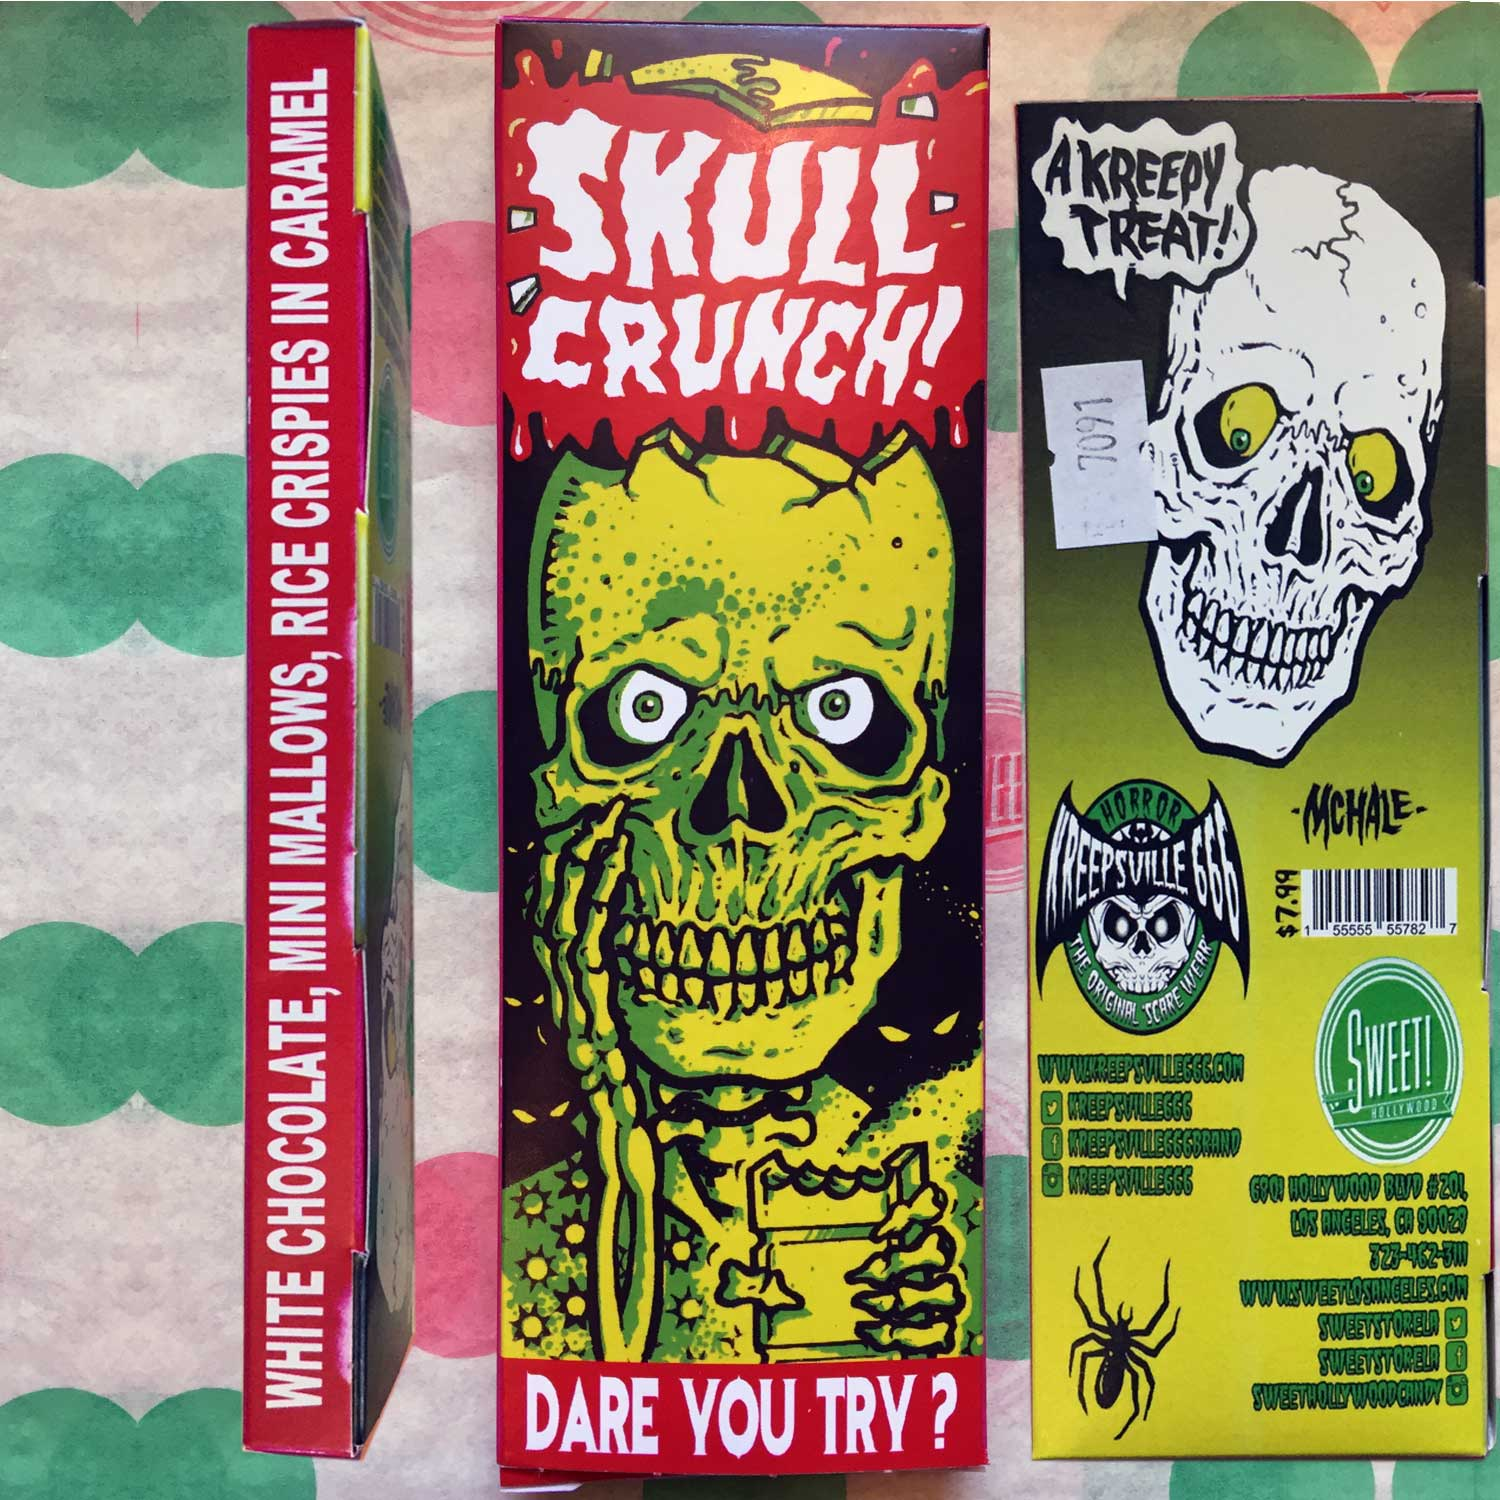 Chocolate Bar Skull Crunch by Count Porl